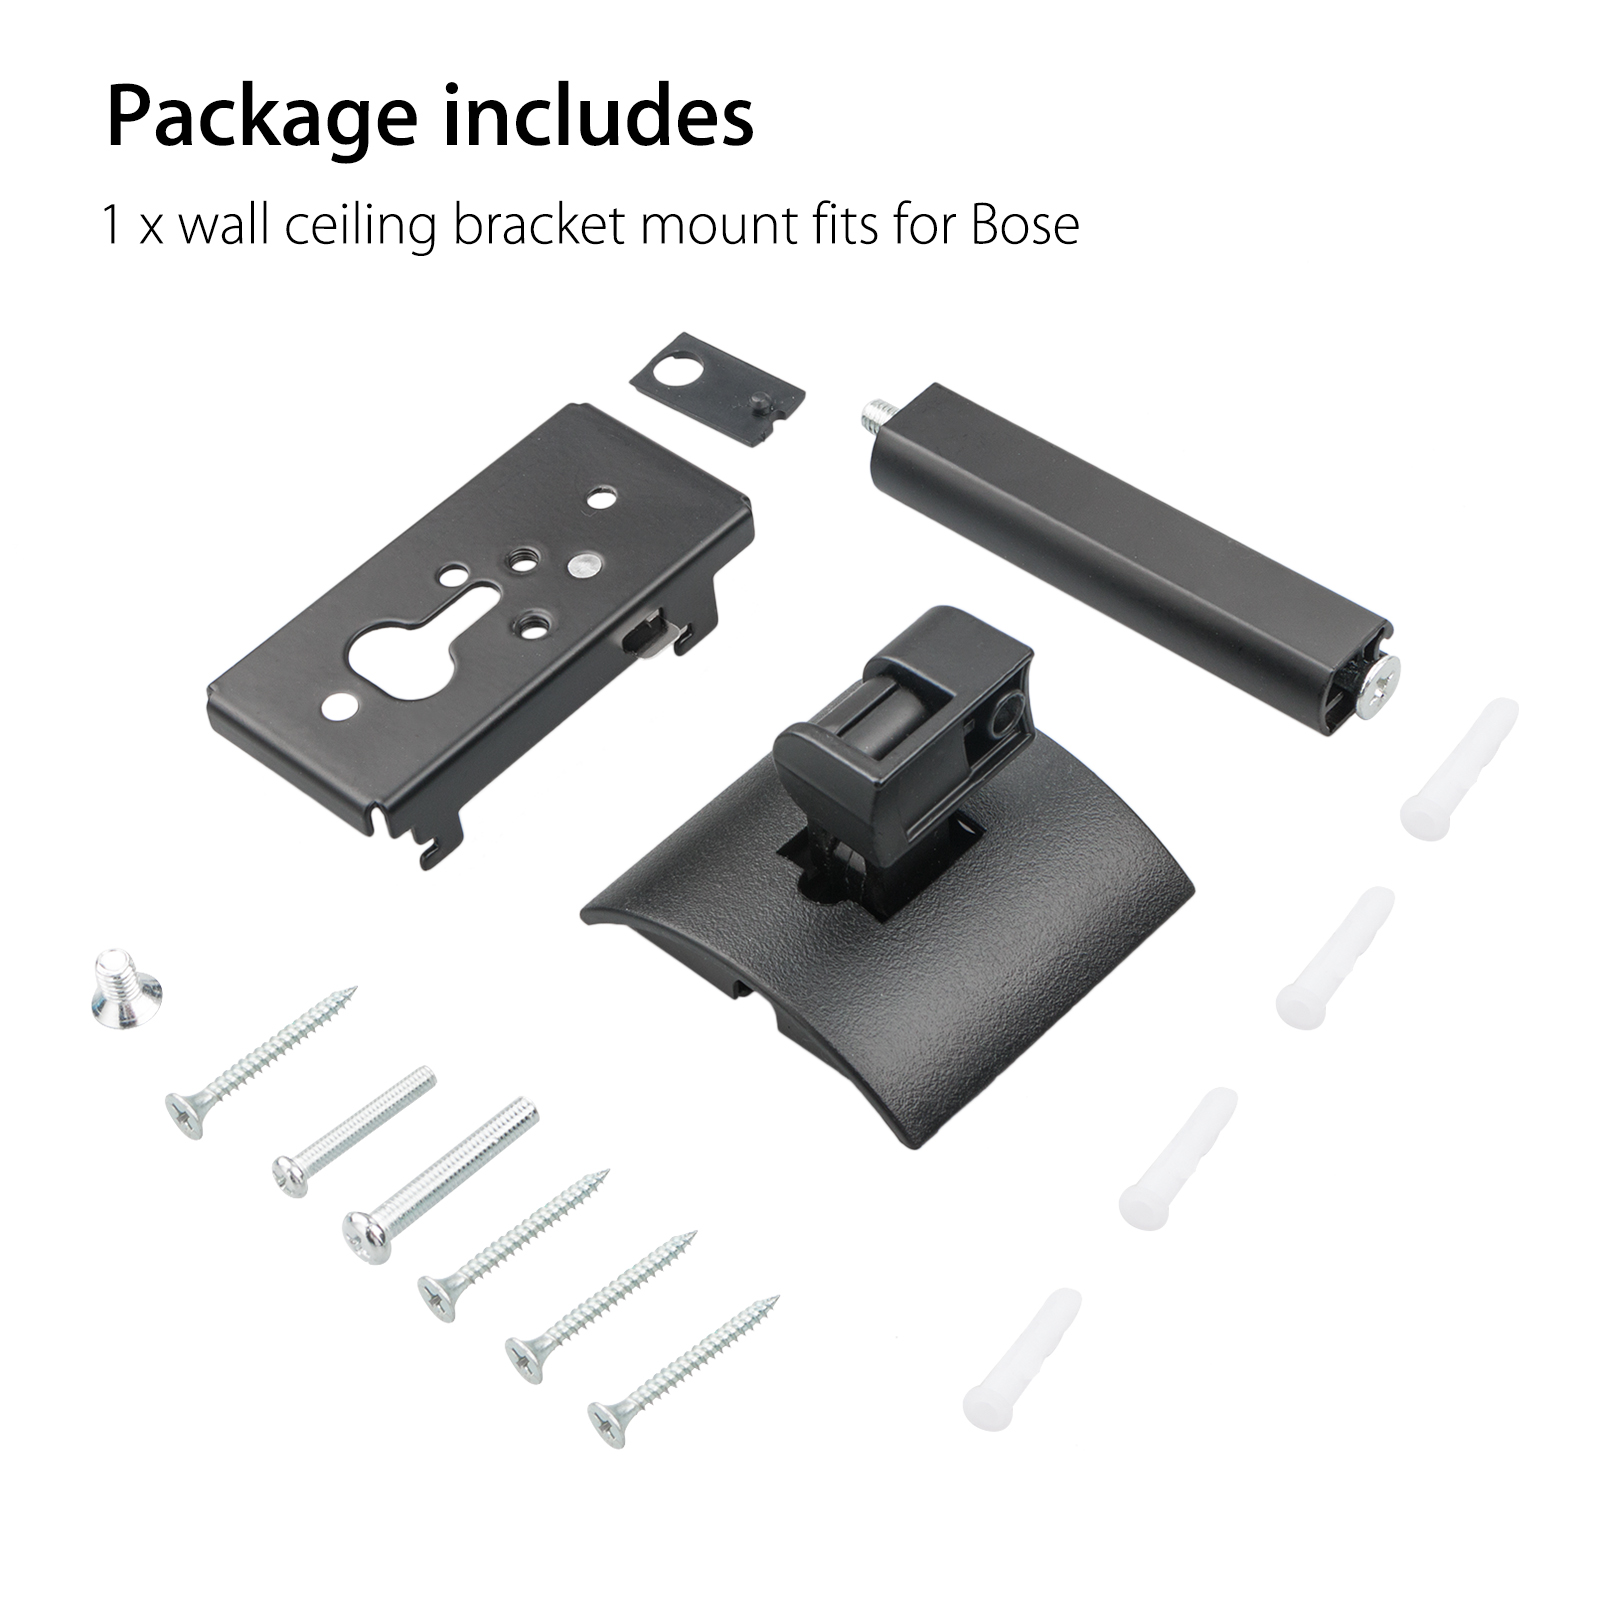 UB20-SERIES-2-II-Wall-Ceiling-Bracket-Mount-fits-for-Bose-all-Lifestyle-CineMate thumbnail 9